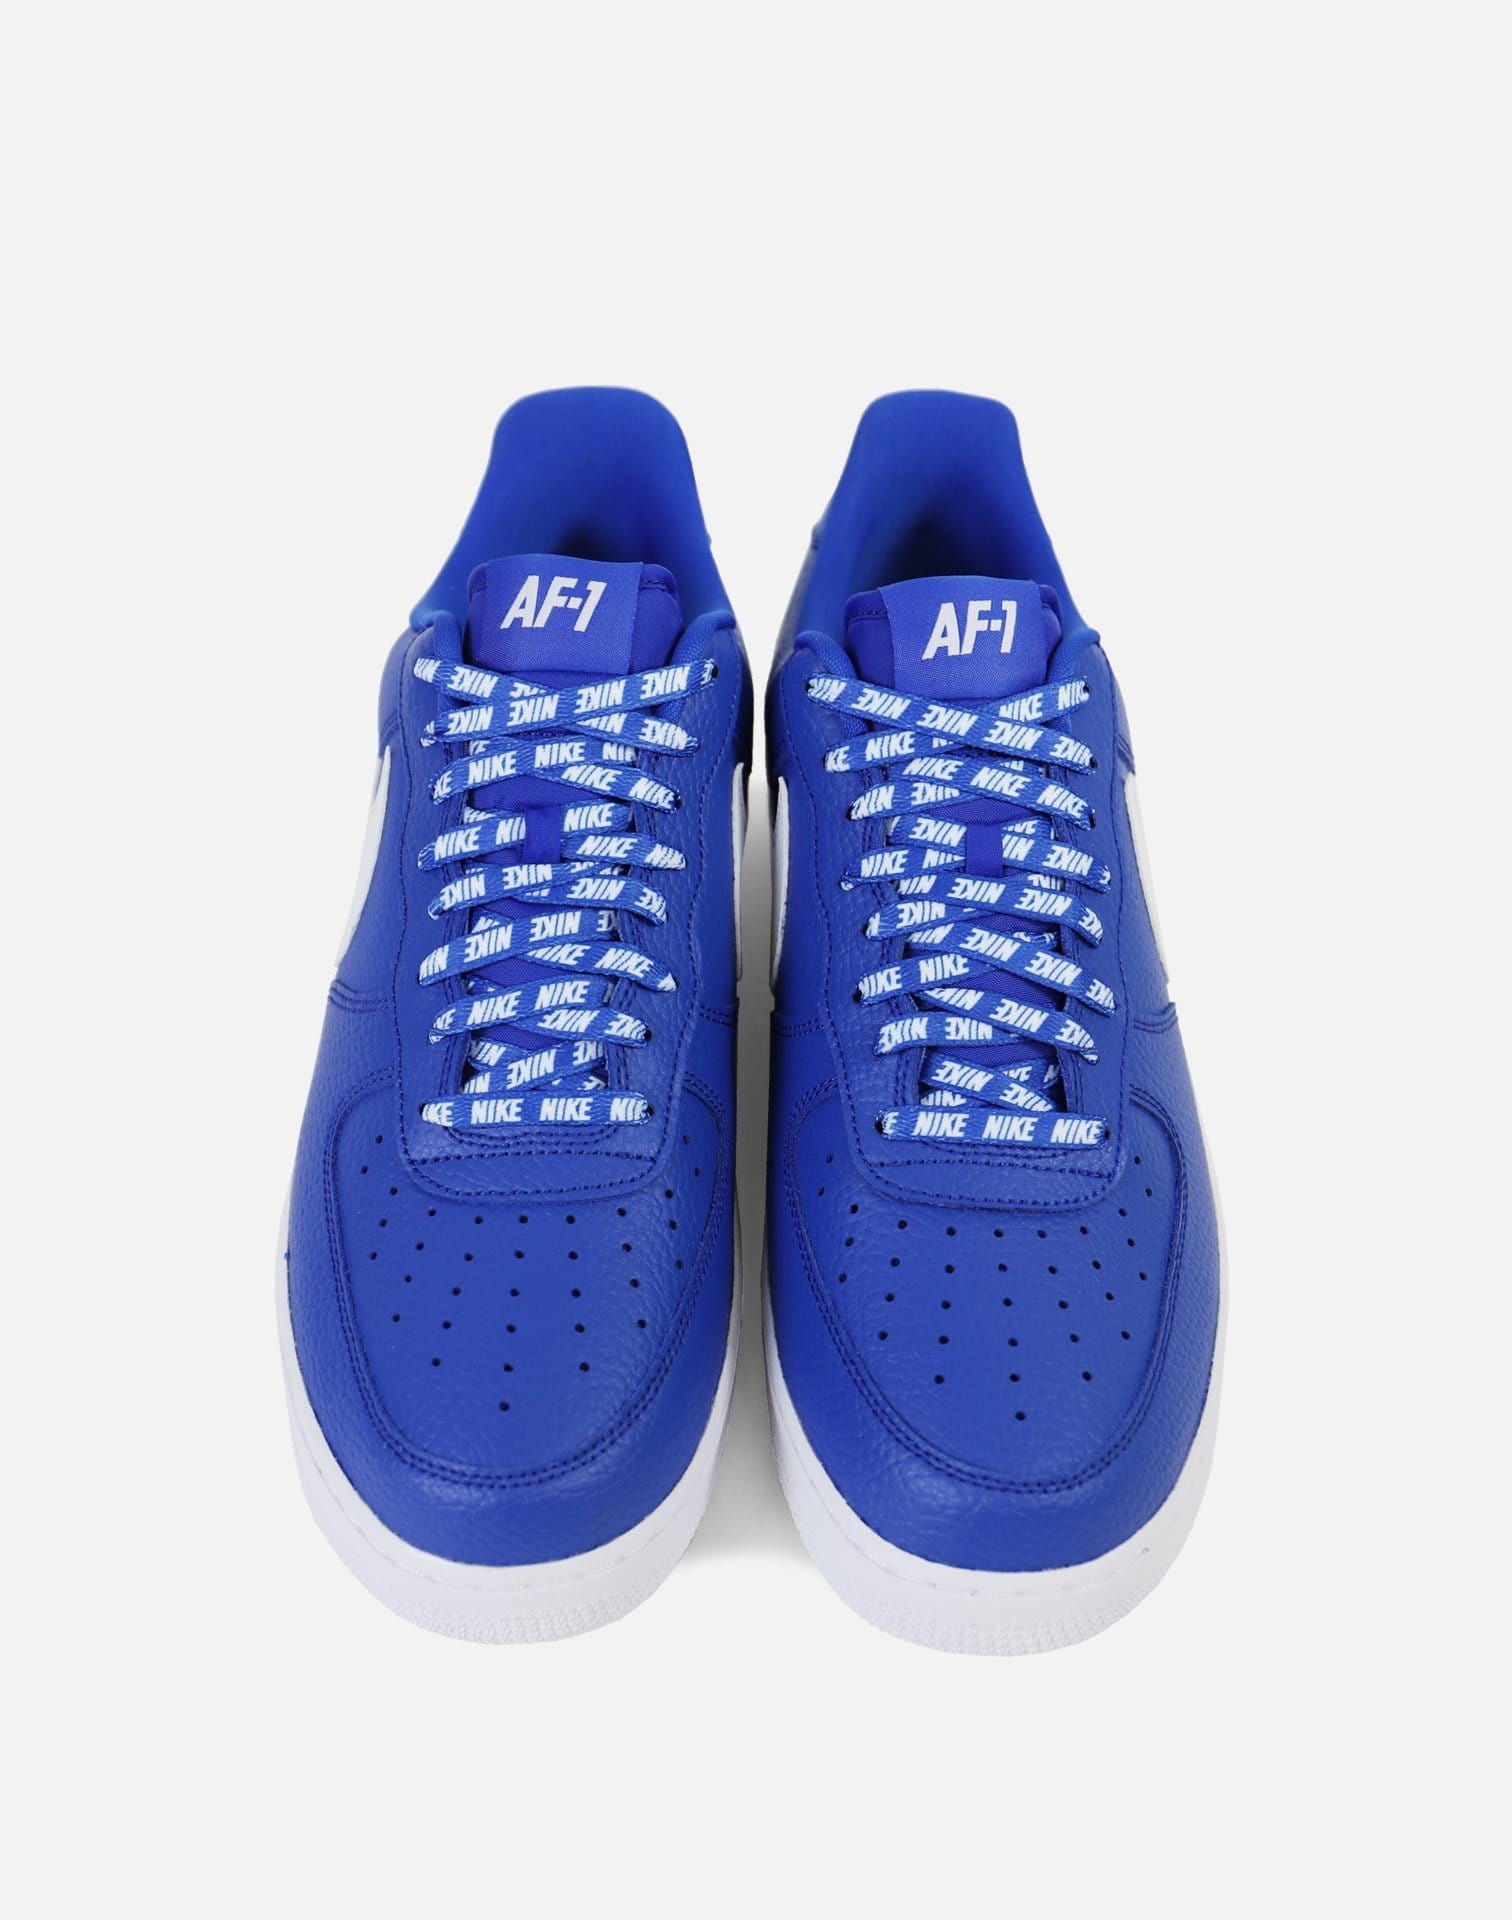 AIR FORCE 1 LOW NBA 'LOVE FOR THE 1' – DTLR